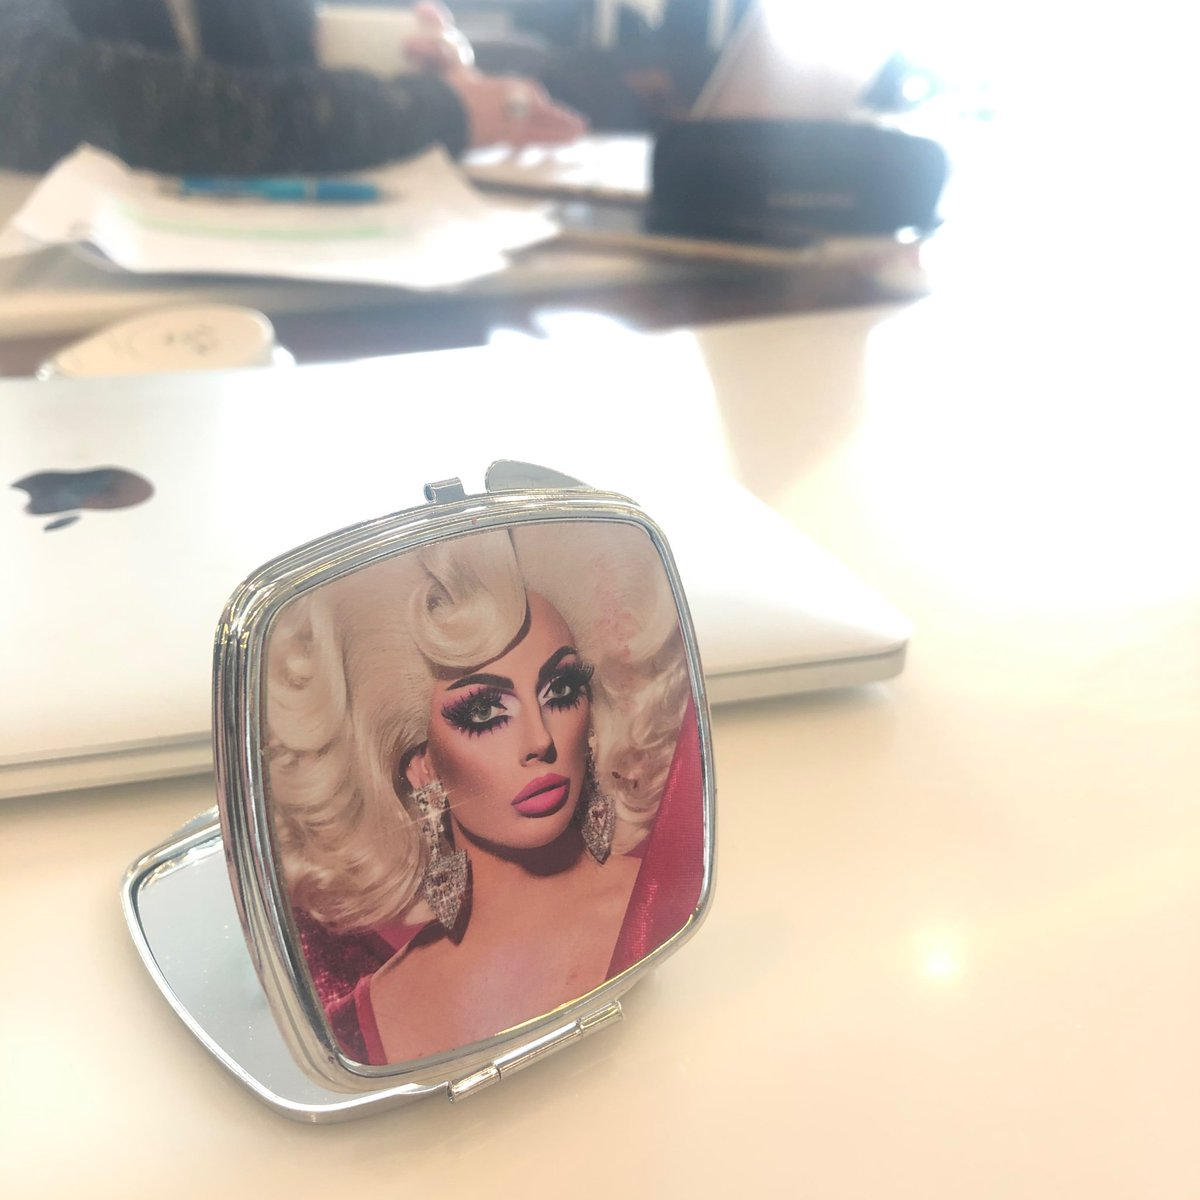 Always travel with my @AlyssaEdwards_1 mirror. 'Tis more blessed to Stan than to be Stanned.